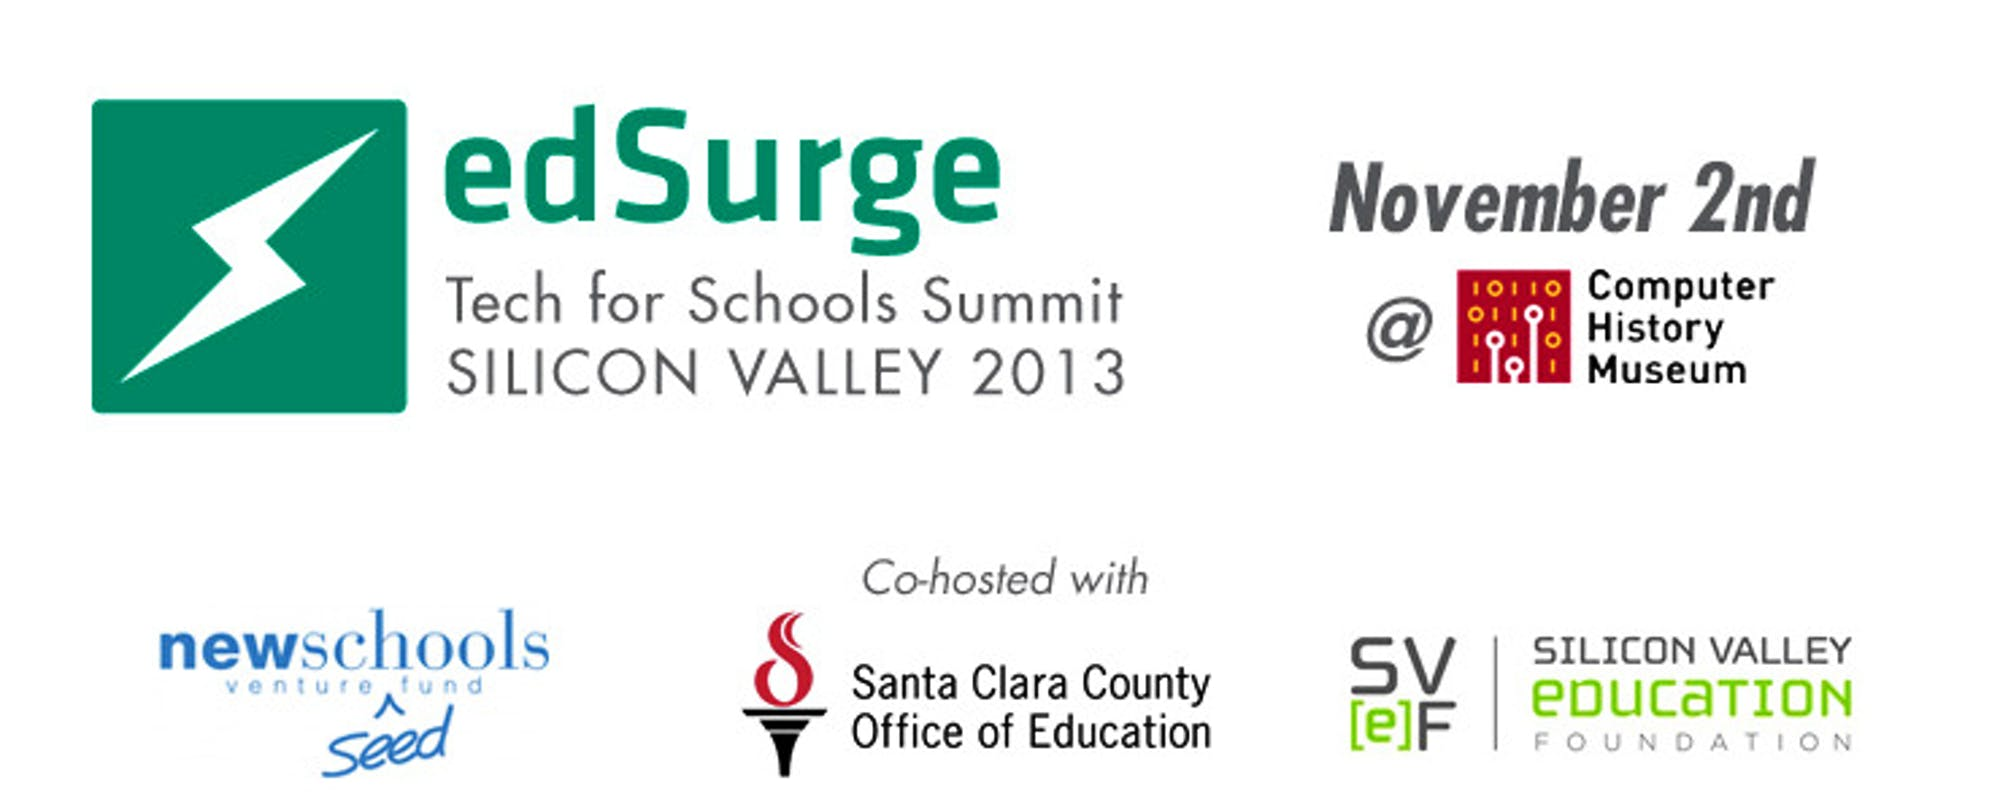 Announcing the EdSurge Tech for Schools Summit: Silicon Valley 2013